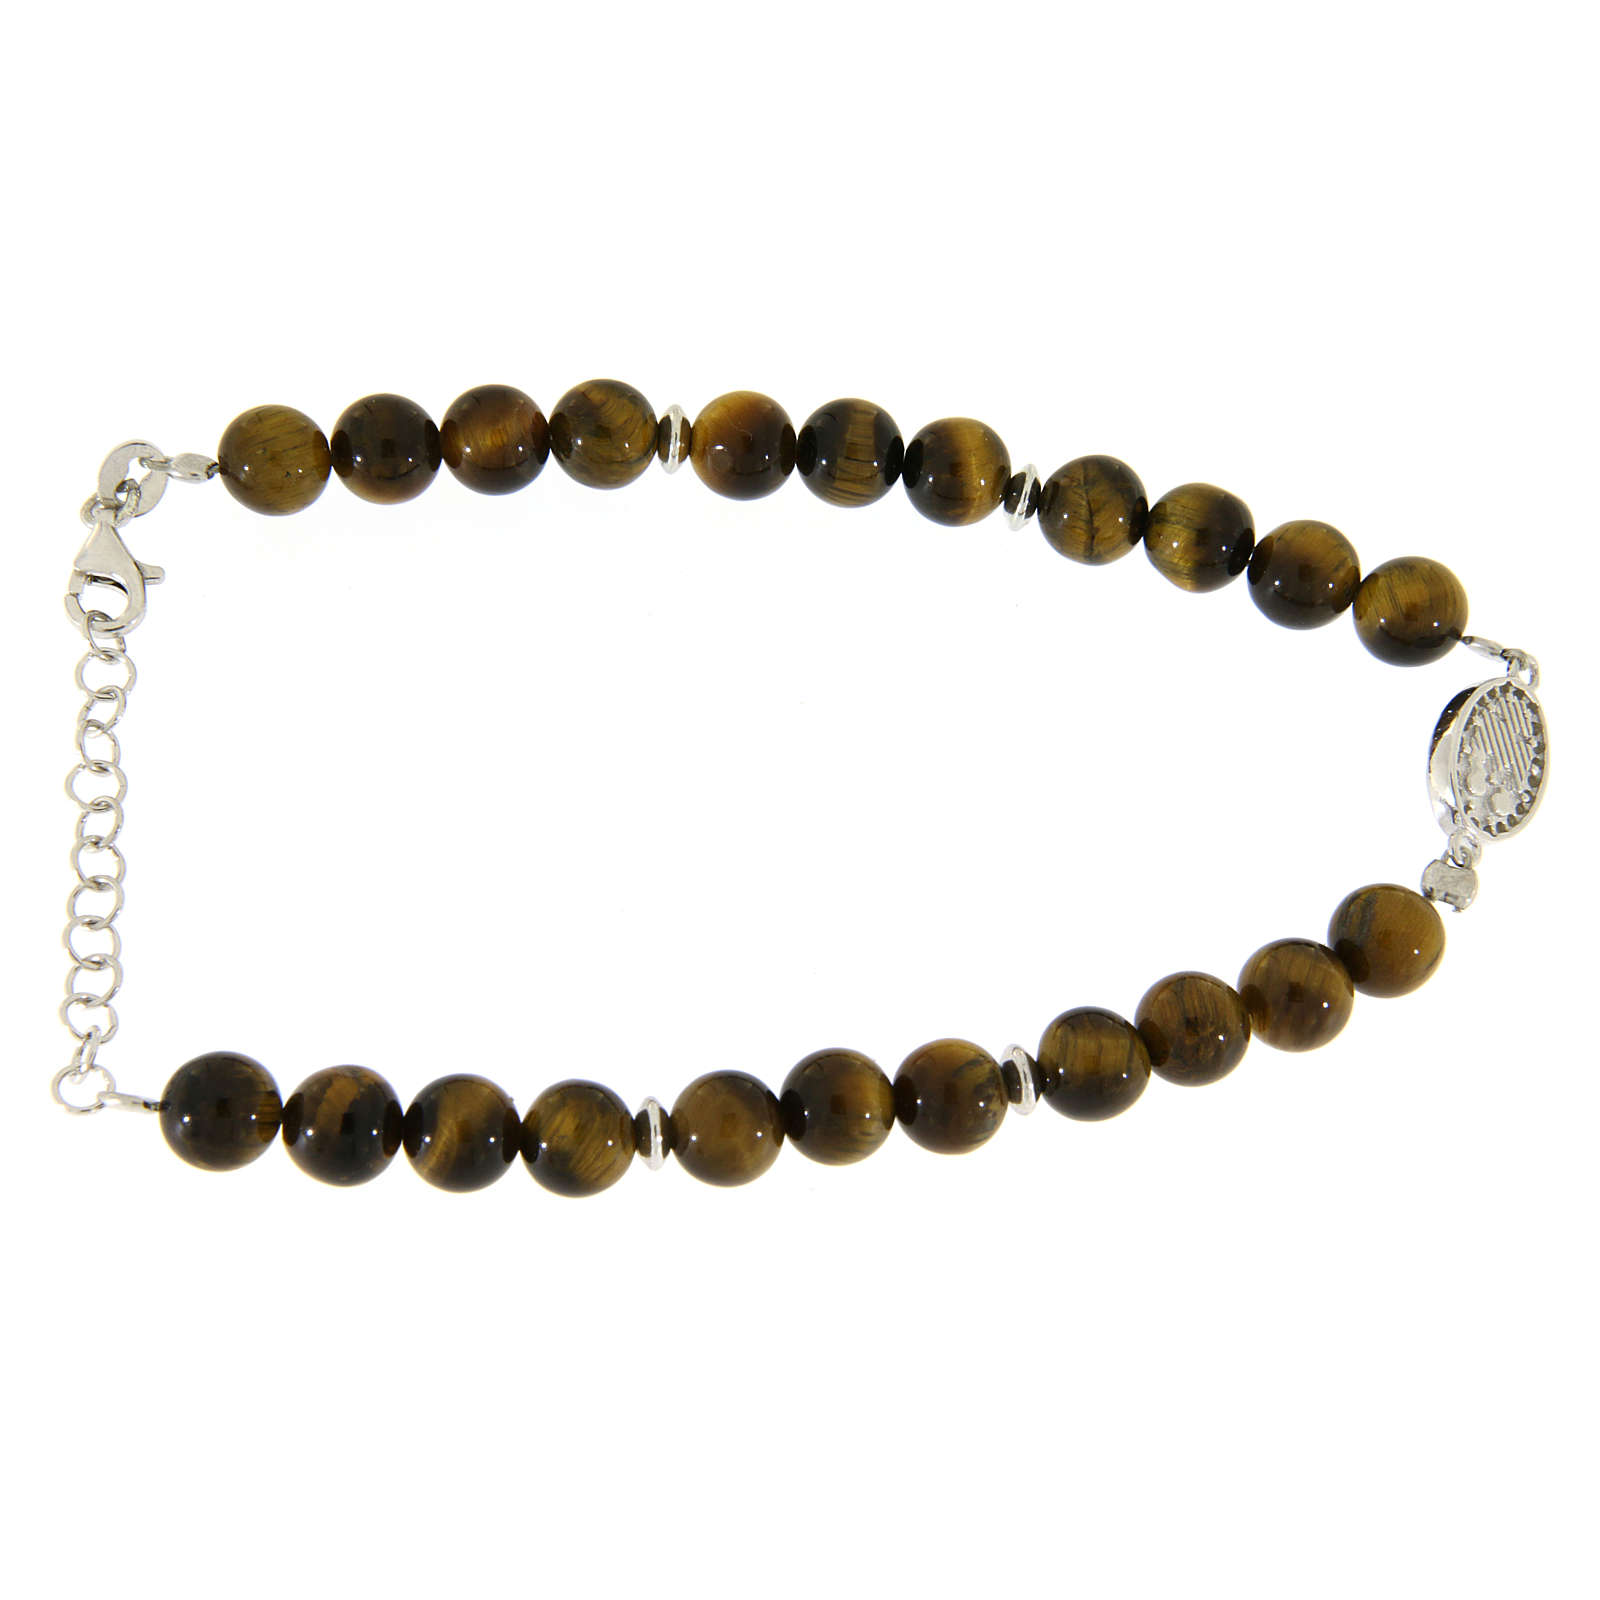 Bracelet with Saint Rita medal with white zircons and smooth tiger's eye spheres 4